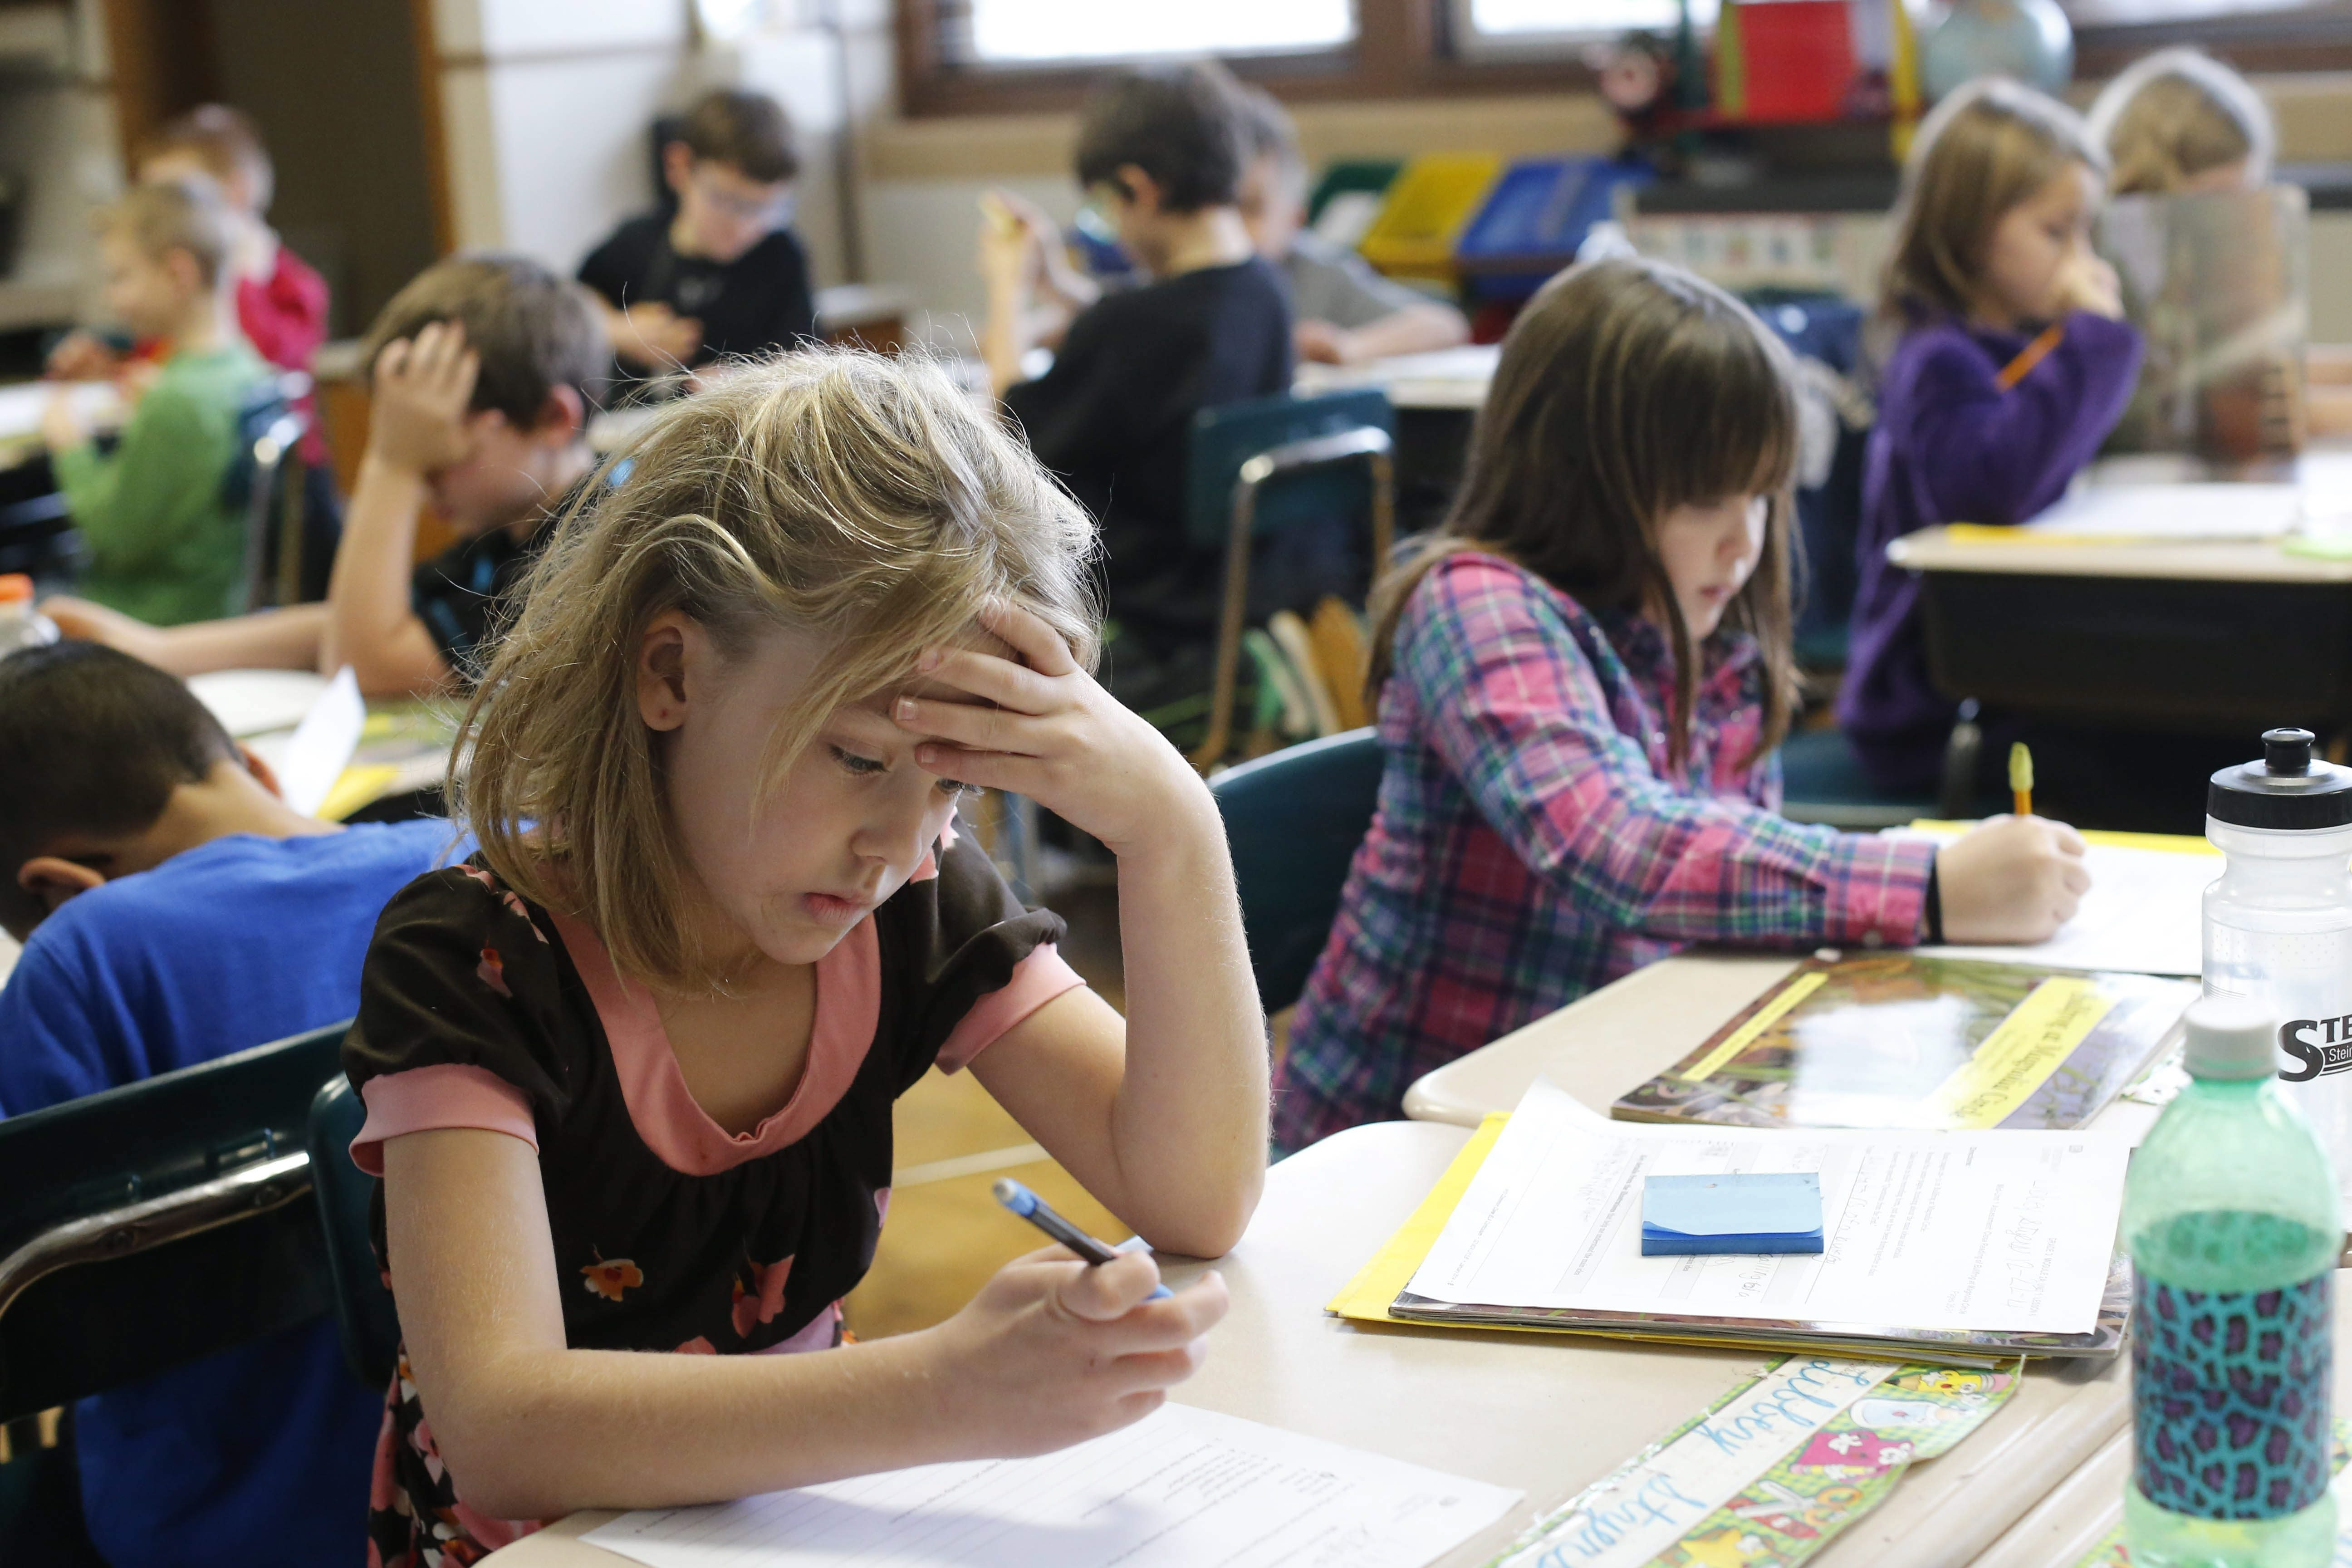 Third-grader Libby Stryers concentrates as she answers test questions at Eden Elementary School.